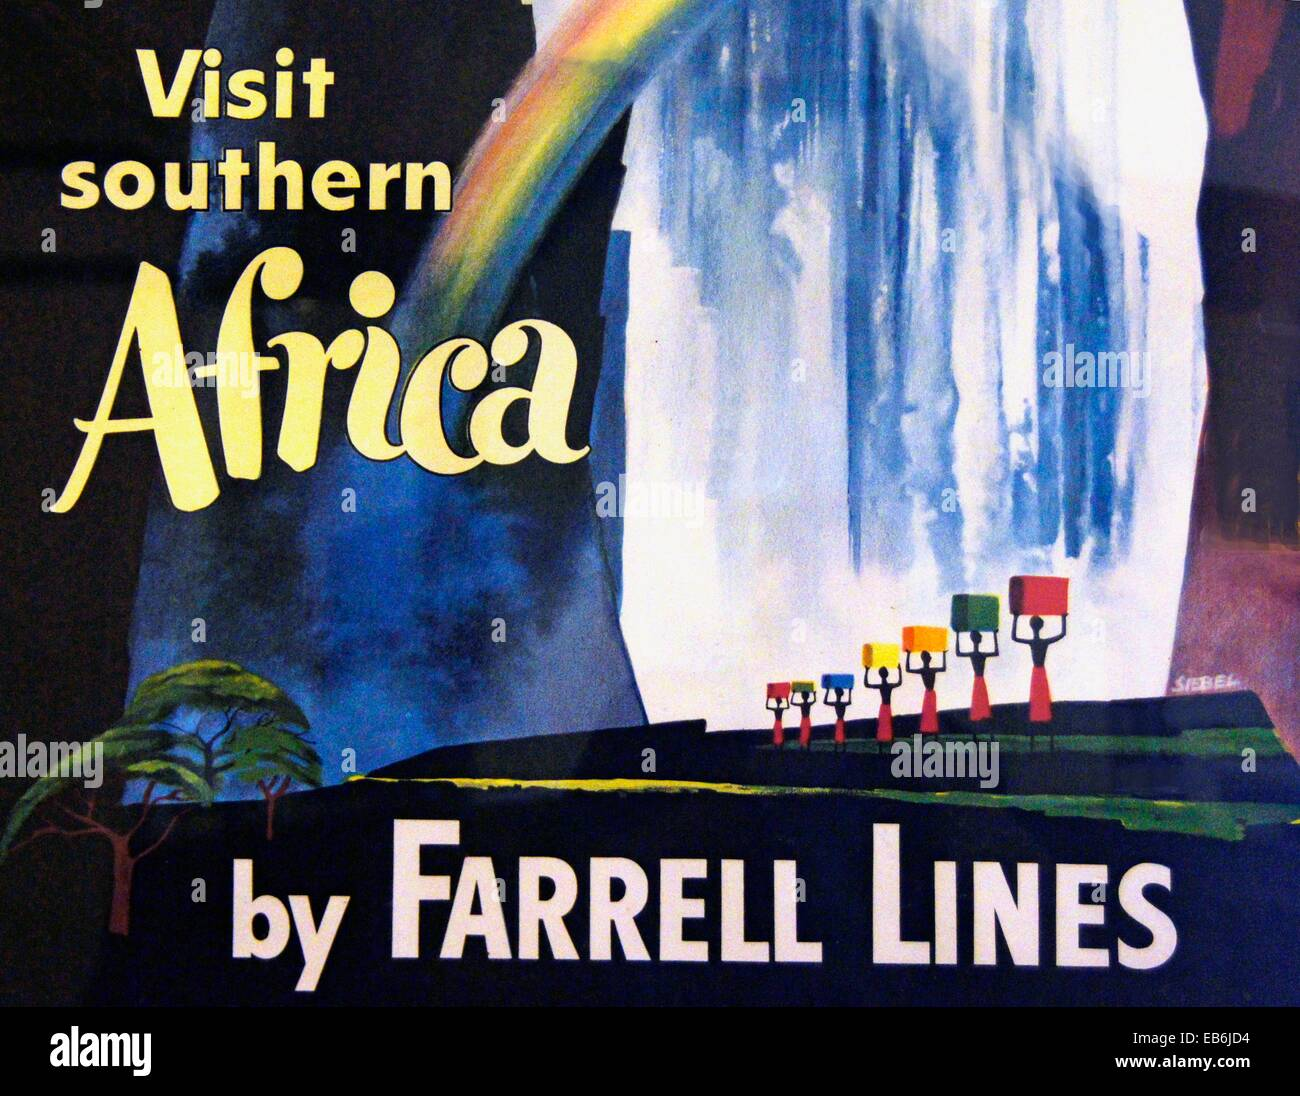 Visit Southern Africa by Farrell Lines - Stock Image